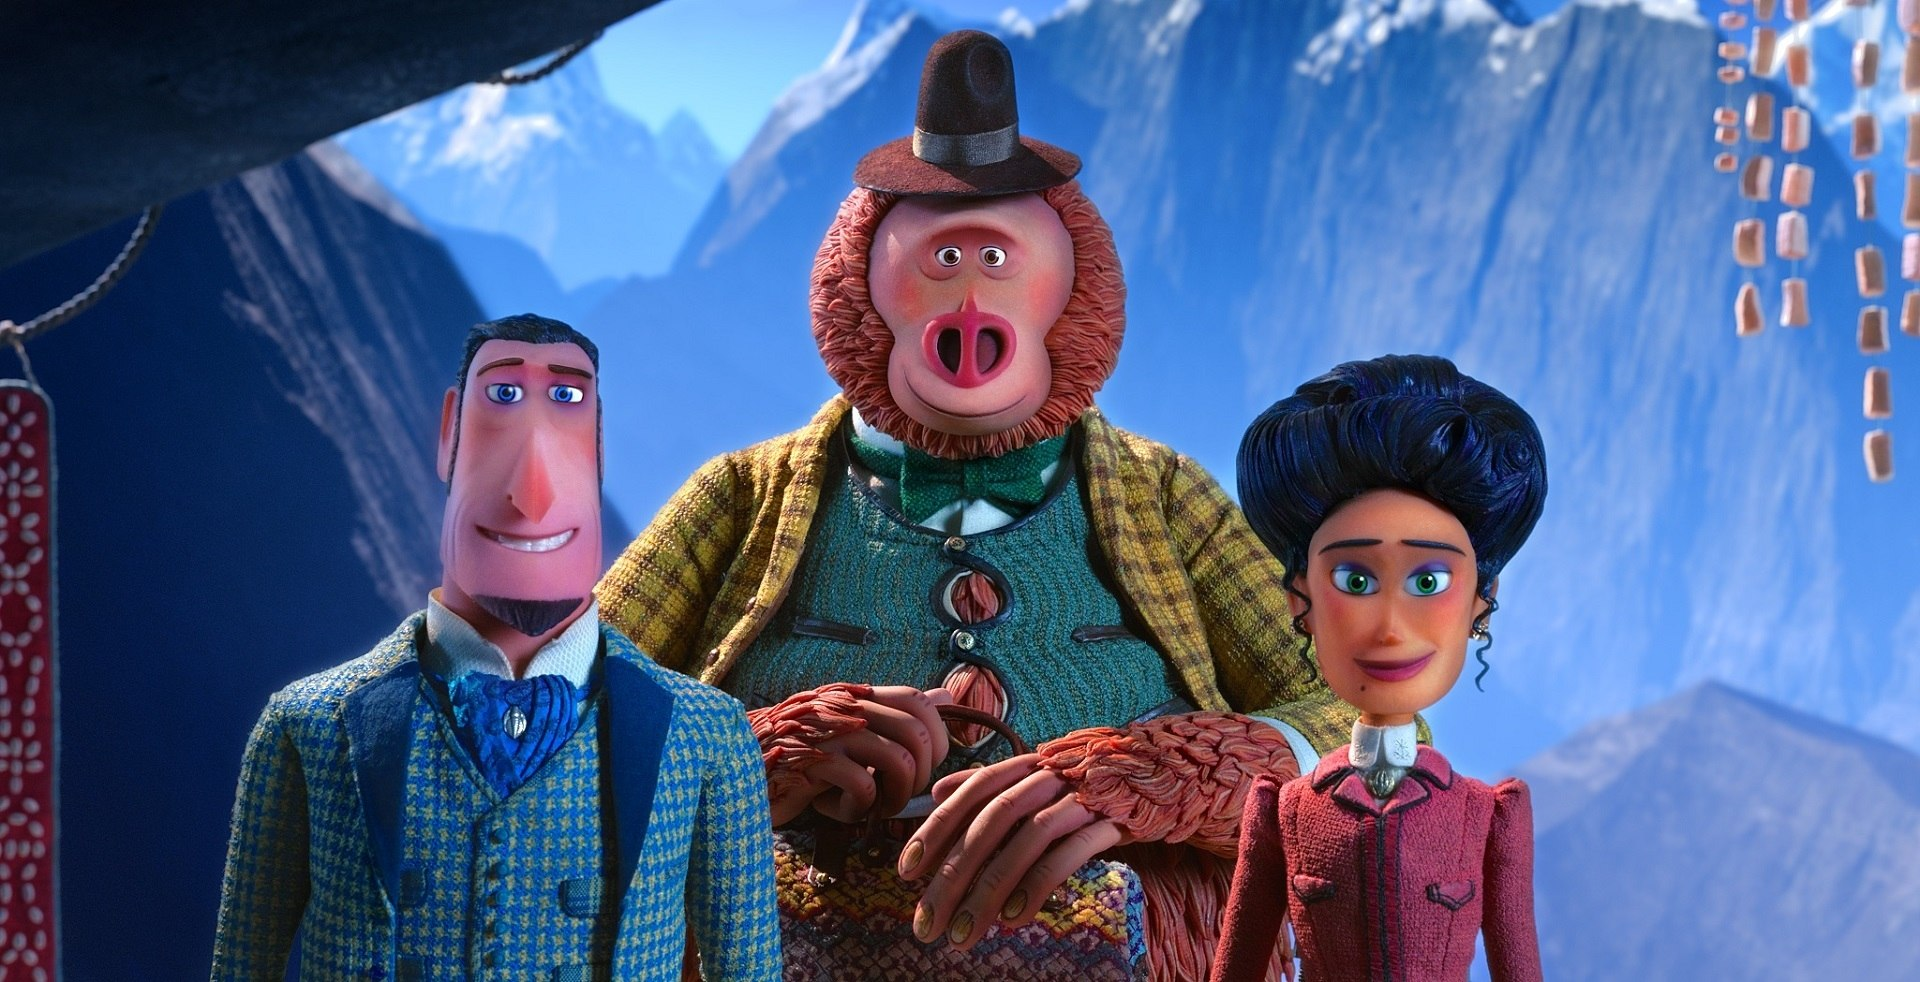 Delightful First Trailer for Laika's New Stop-Motion Film 'Missing Link'